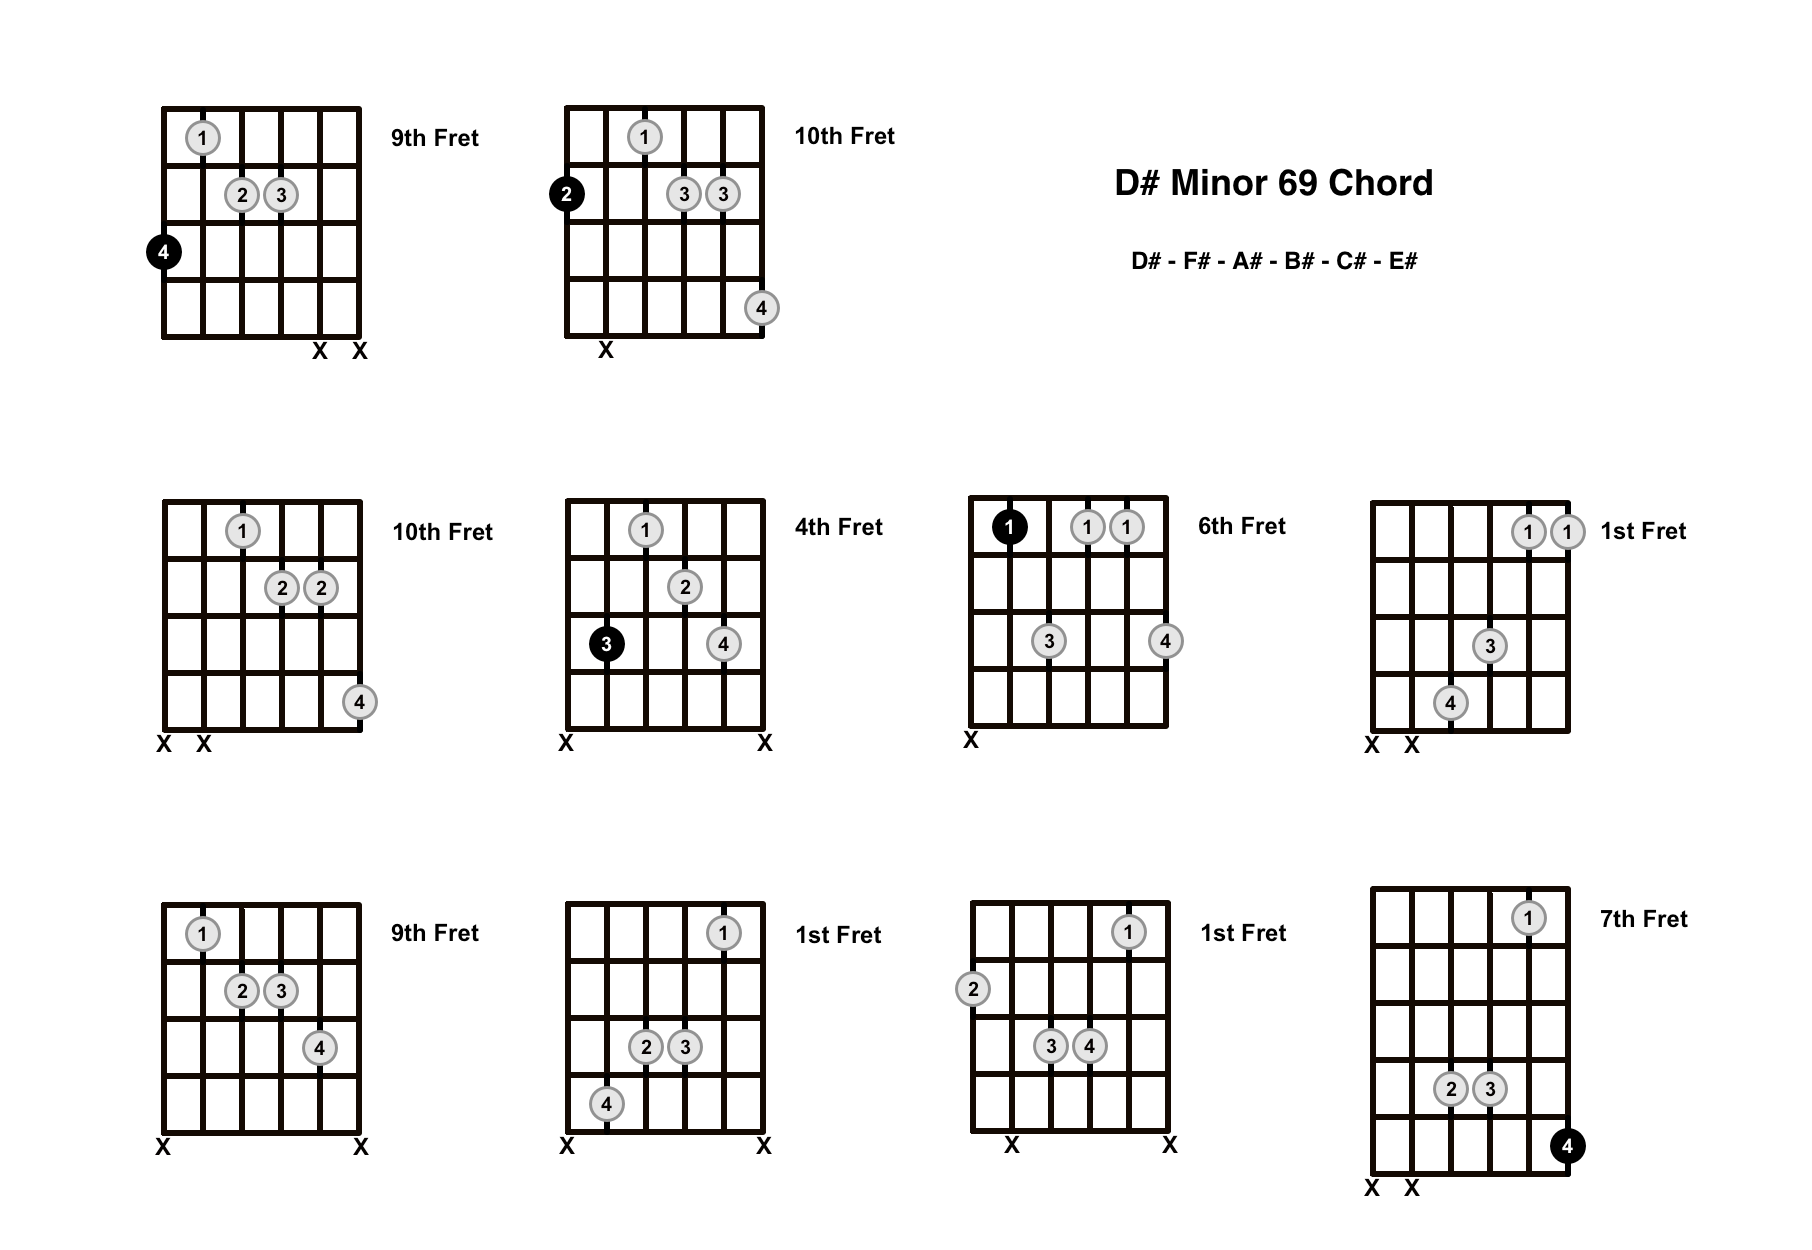 D#m69 Chord On The Guitar (D Sharp Minor 69) – Diagrams, Finger Positions and Theory